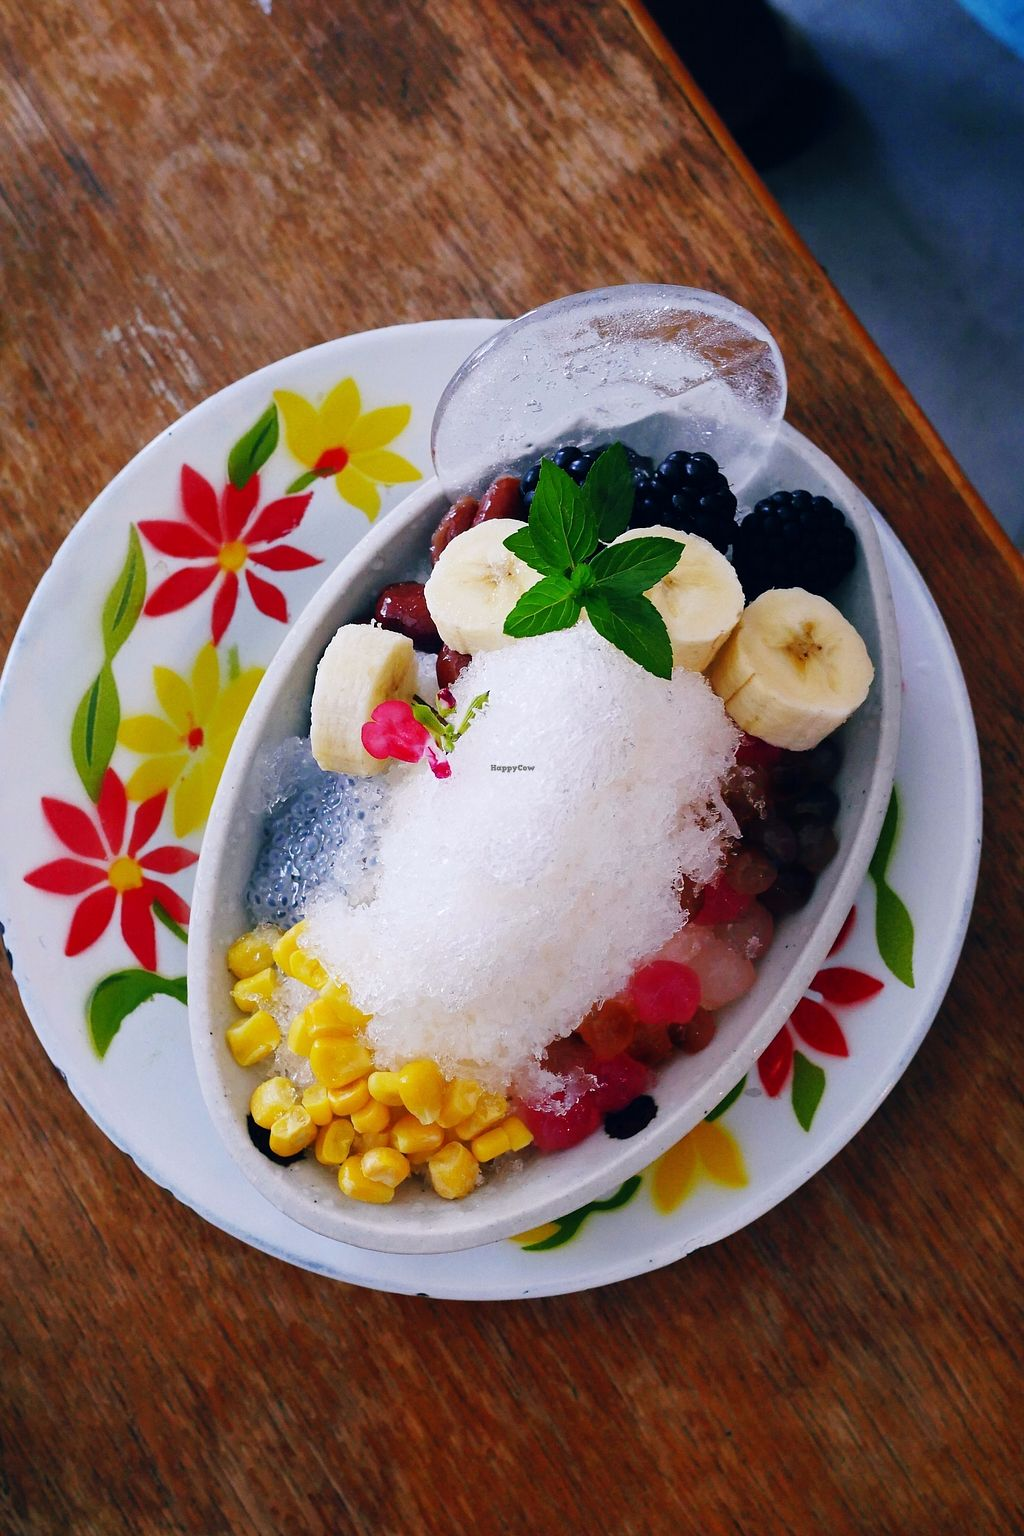 """Photo of Ruwam  by <a href=""""/members/profile/YukiLim"""">YukiLim</a> <br/>Thai inspired shaved ice <br/> August 7, 2017  - <a href='/contact/abuse/image/96731/290112'>Report</a>"""